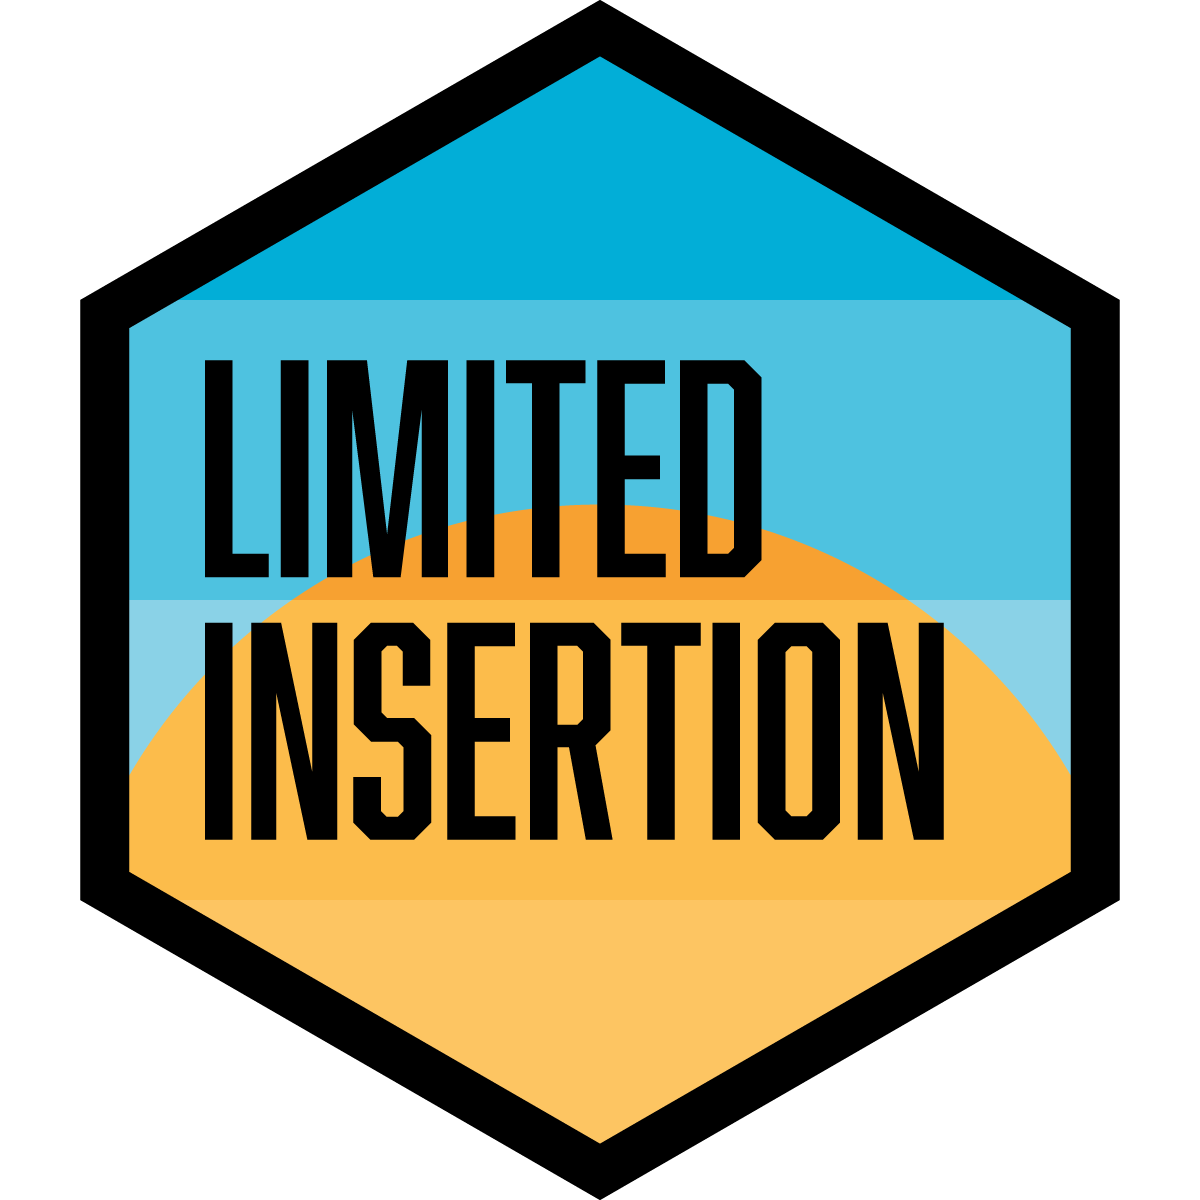 Limited Insertion show art